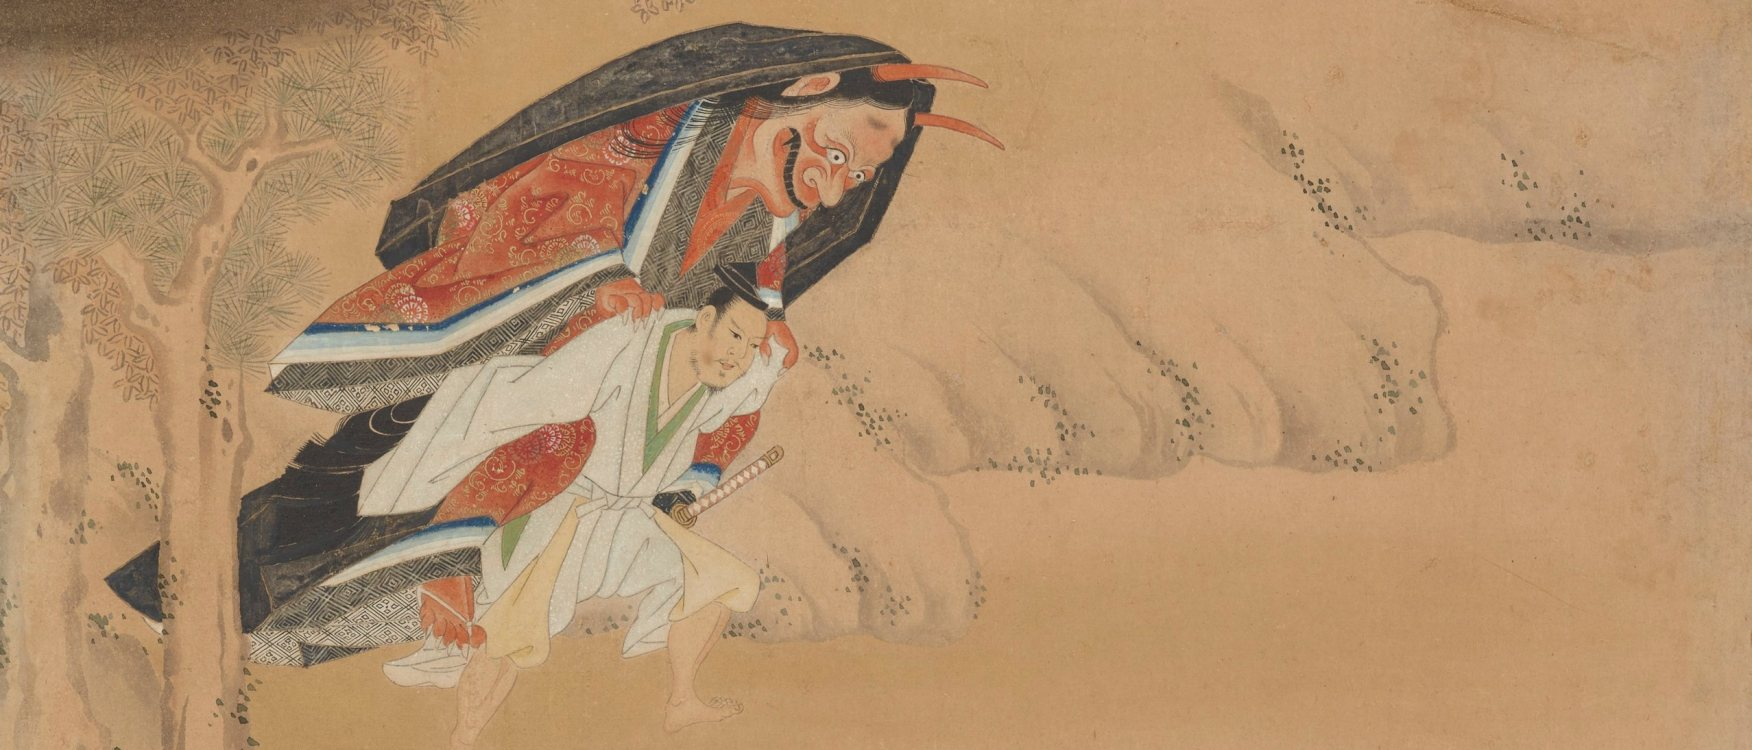 Detail, Warrior Omori Hikoshichi carrying demon on his back